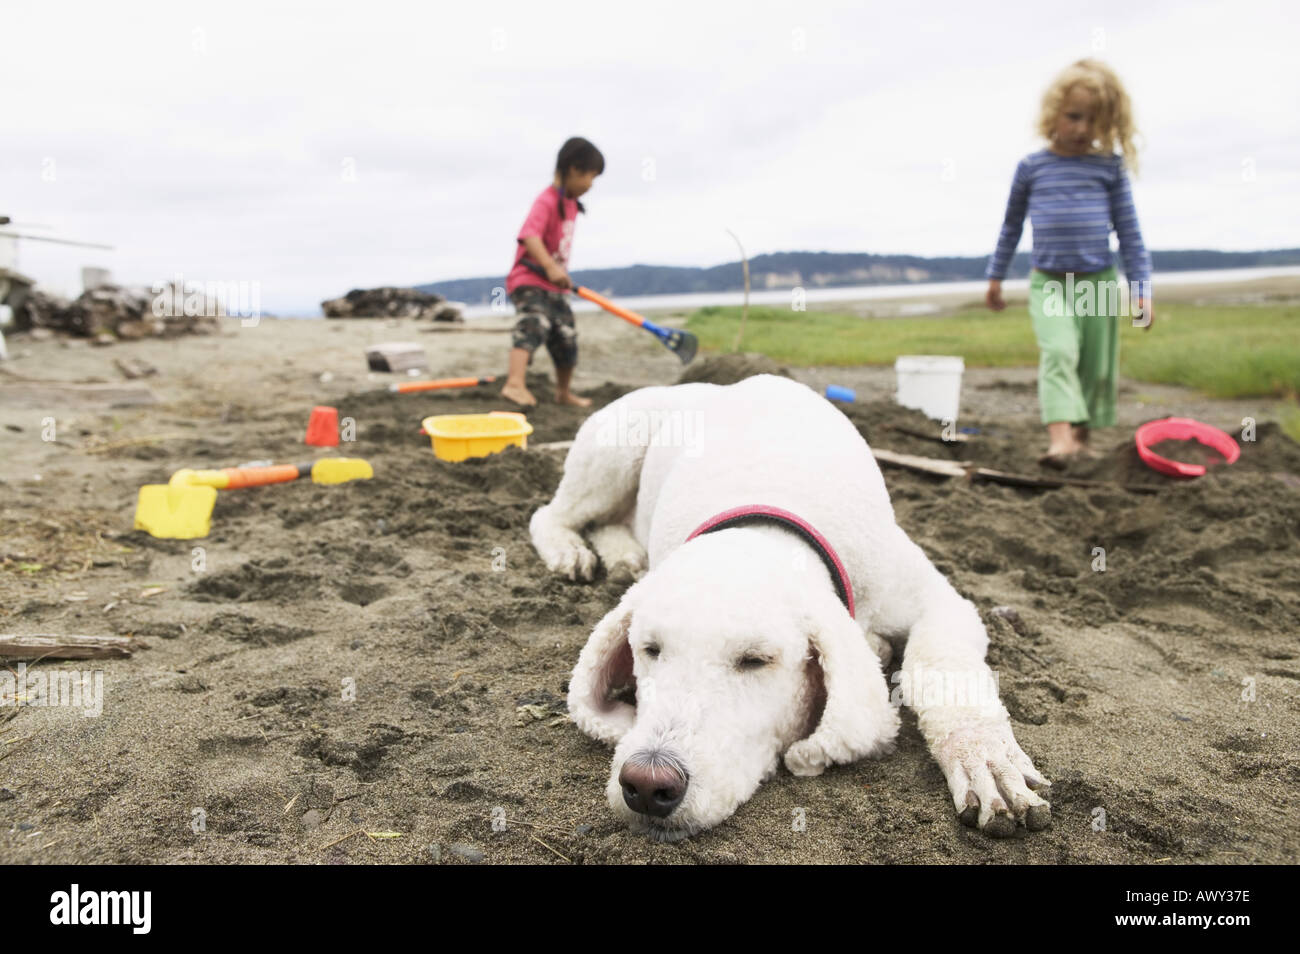 Dog sleeping on the beach while children play - Stock Image